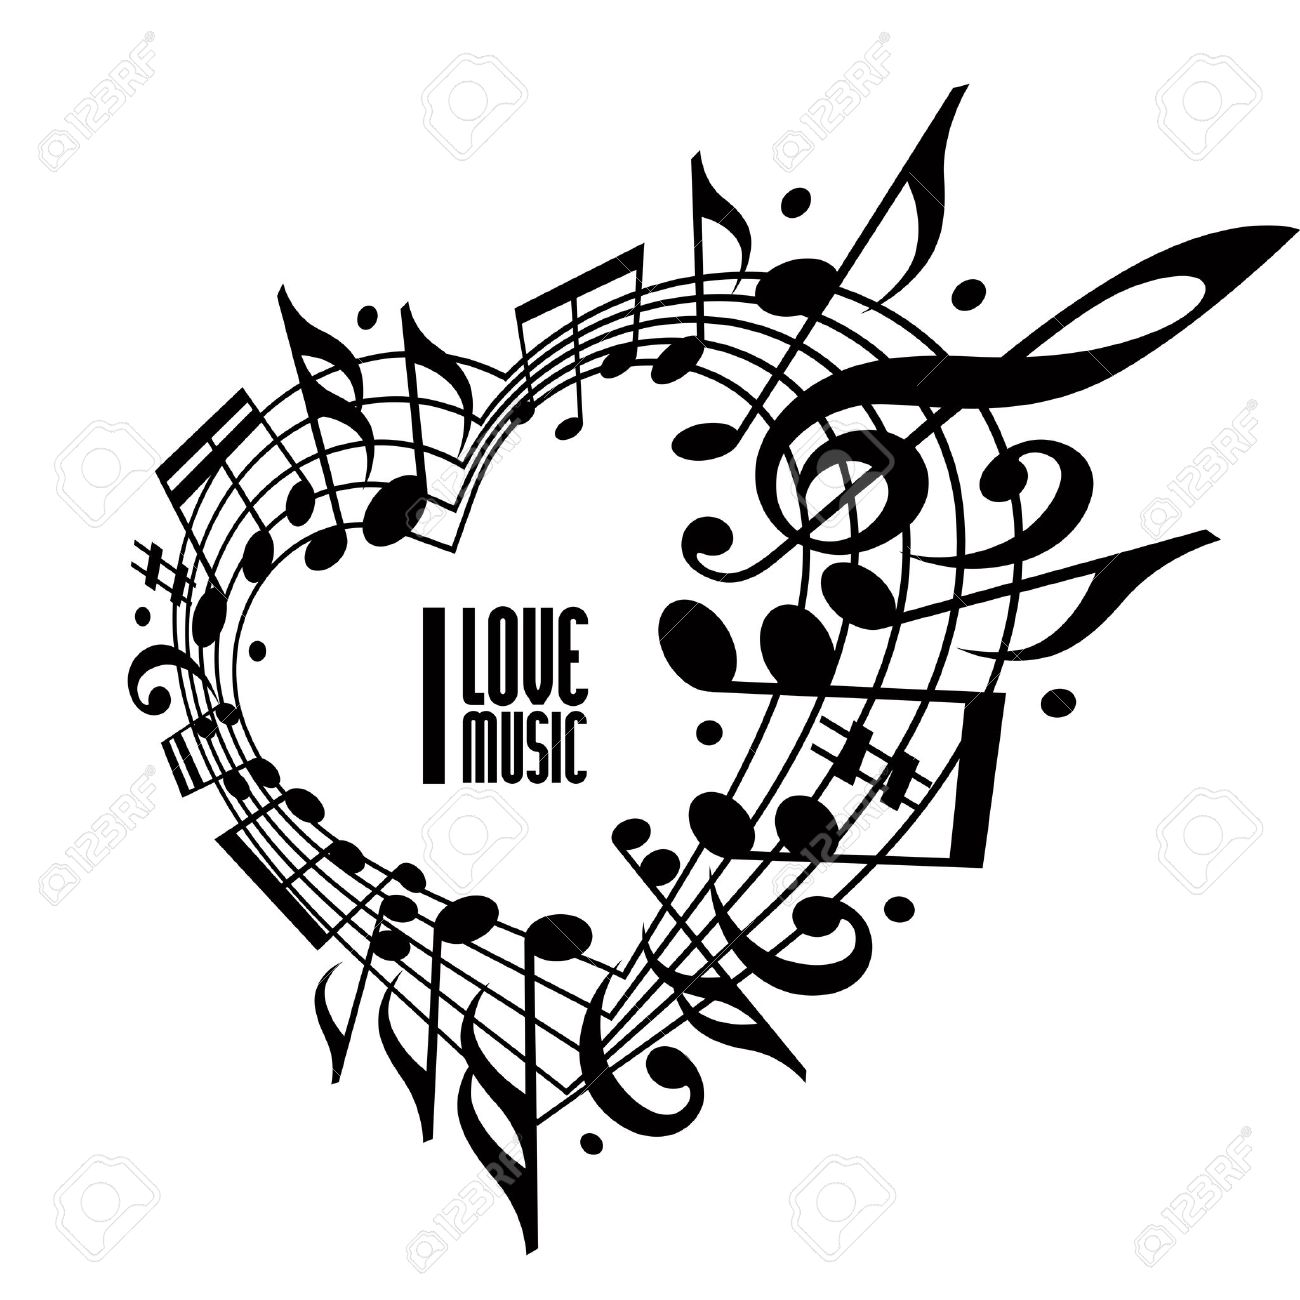 I love music concept, black and white design. Heart made with musical notes and clef, black and white design, contain copy space inside for your text, music theme vector design template. Stock Vector - 31986428